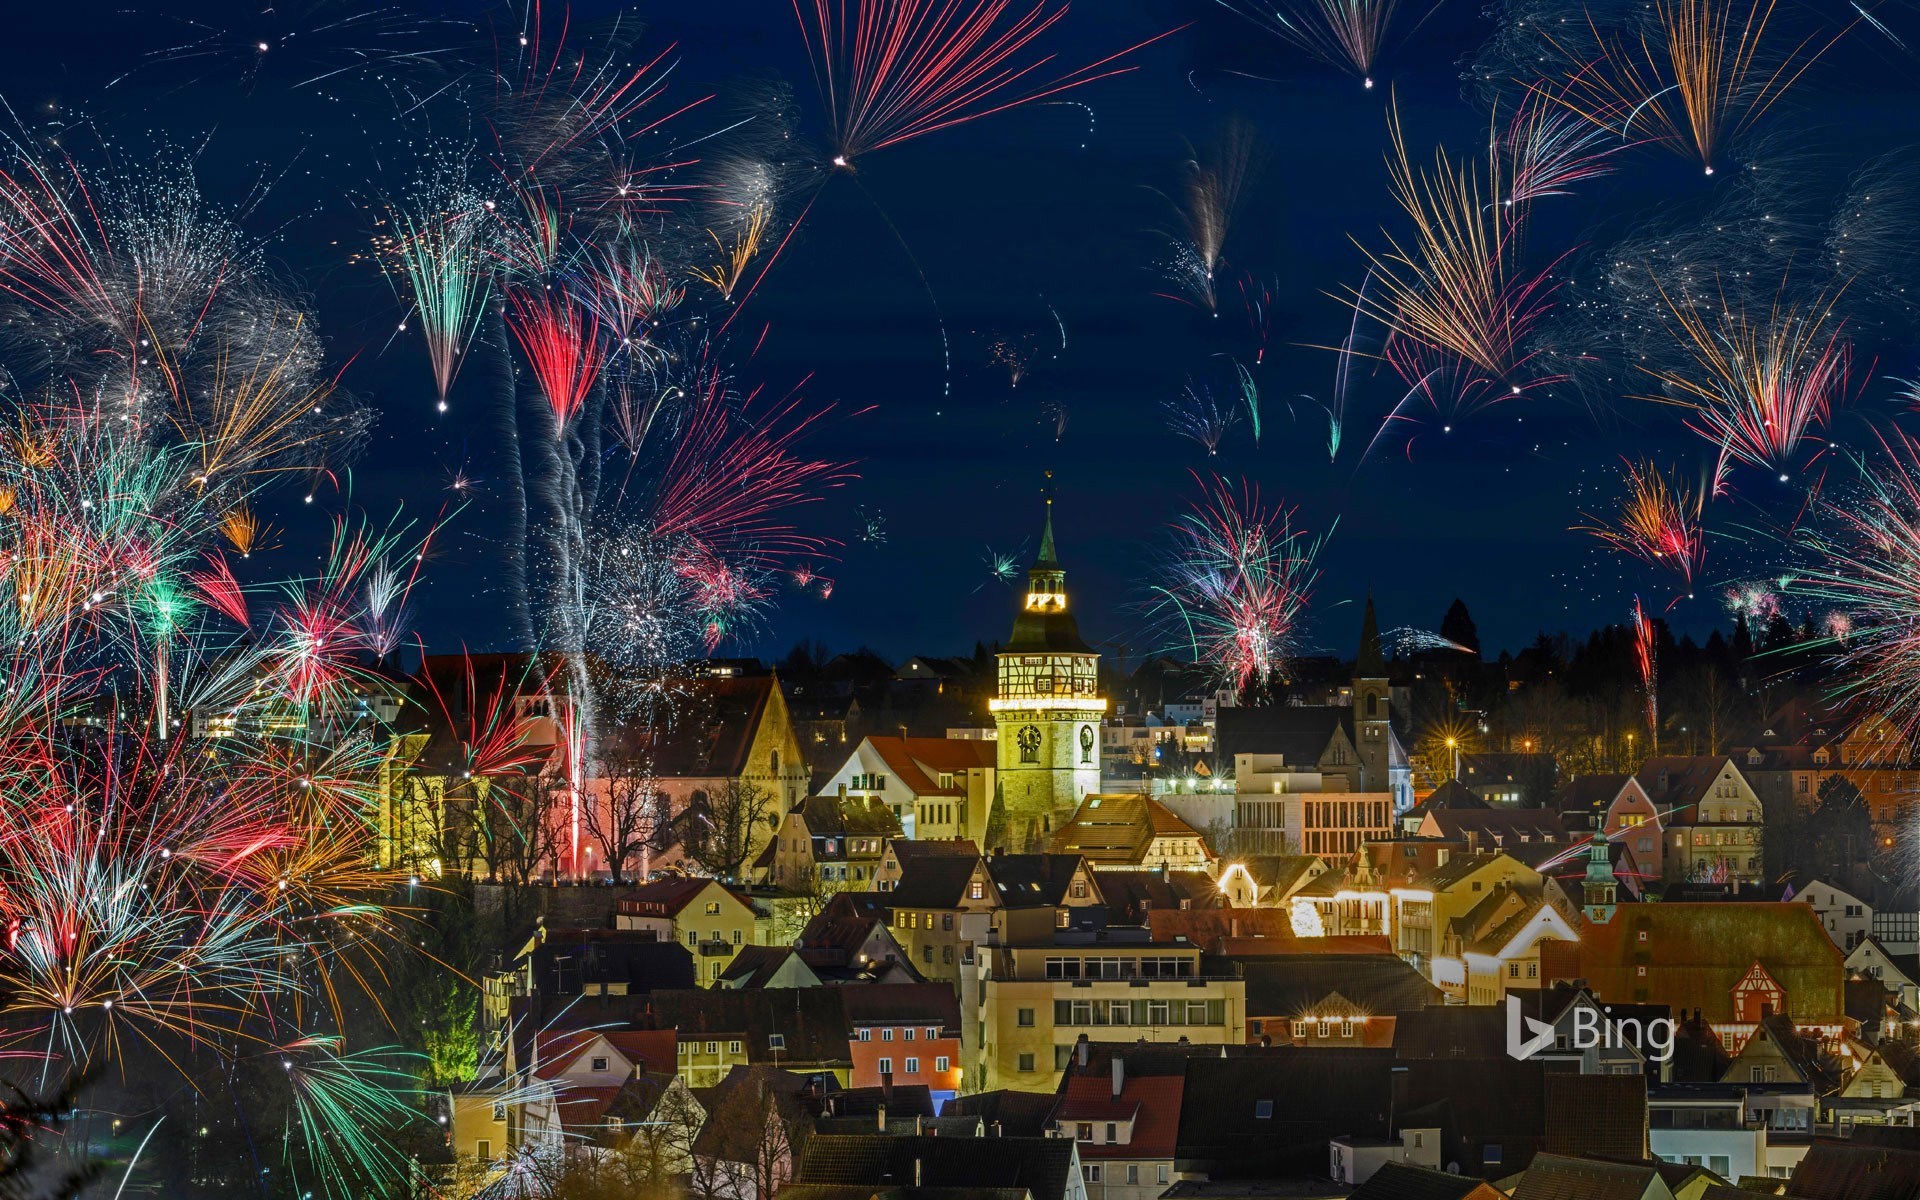 Fireworks for New Year's Eve in Backnang, Germany